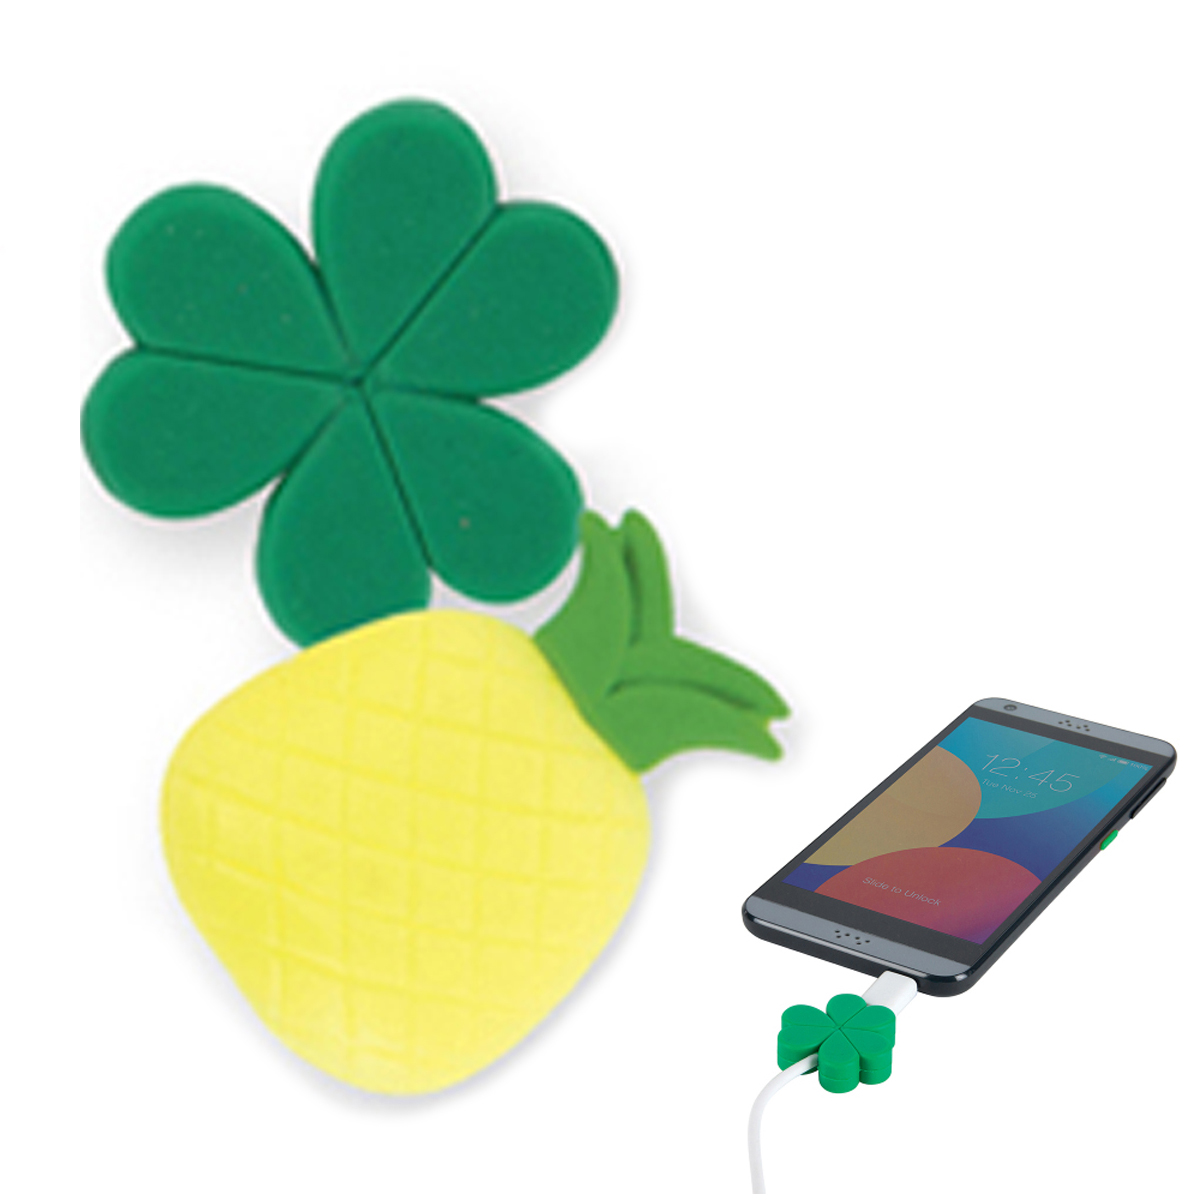 Duo protège-cables silicone \'Trèfle Ananas\' vert jaune - pour cable USB jack 35 mm - [A1686]